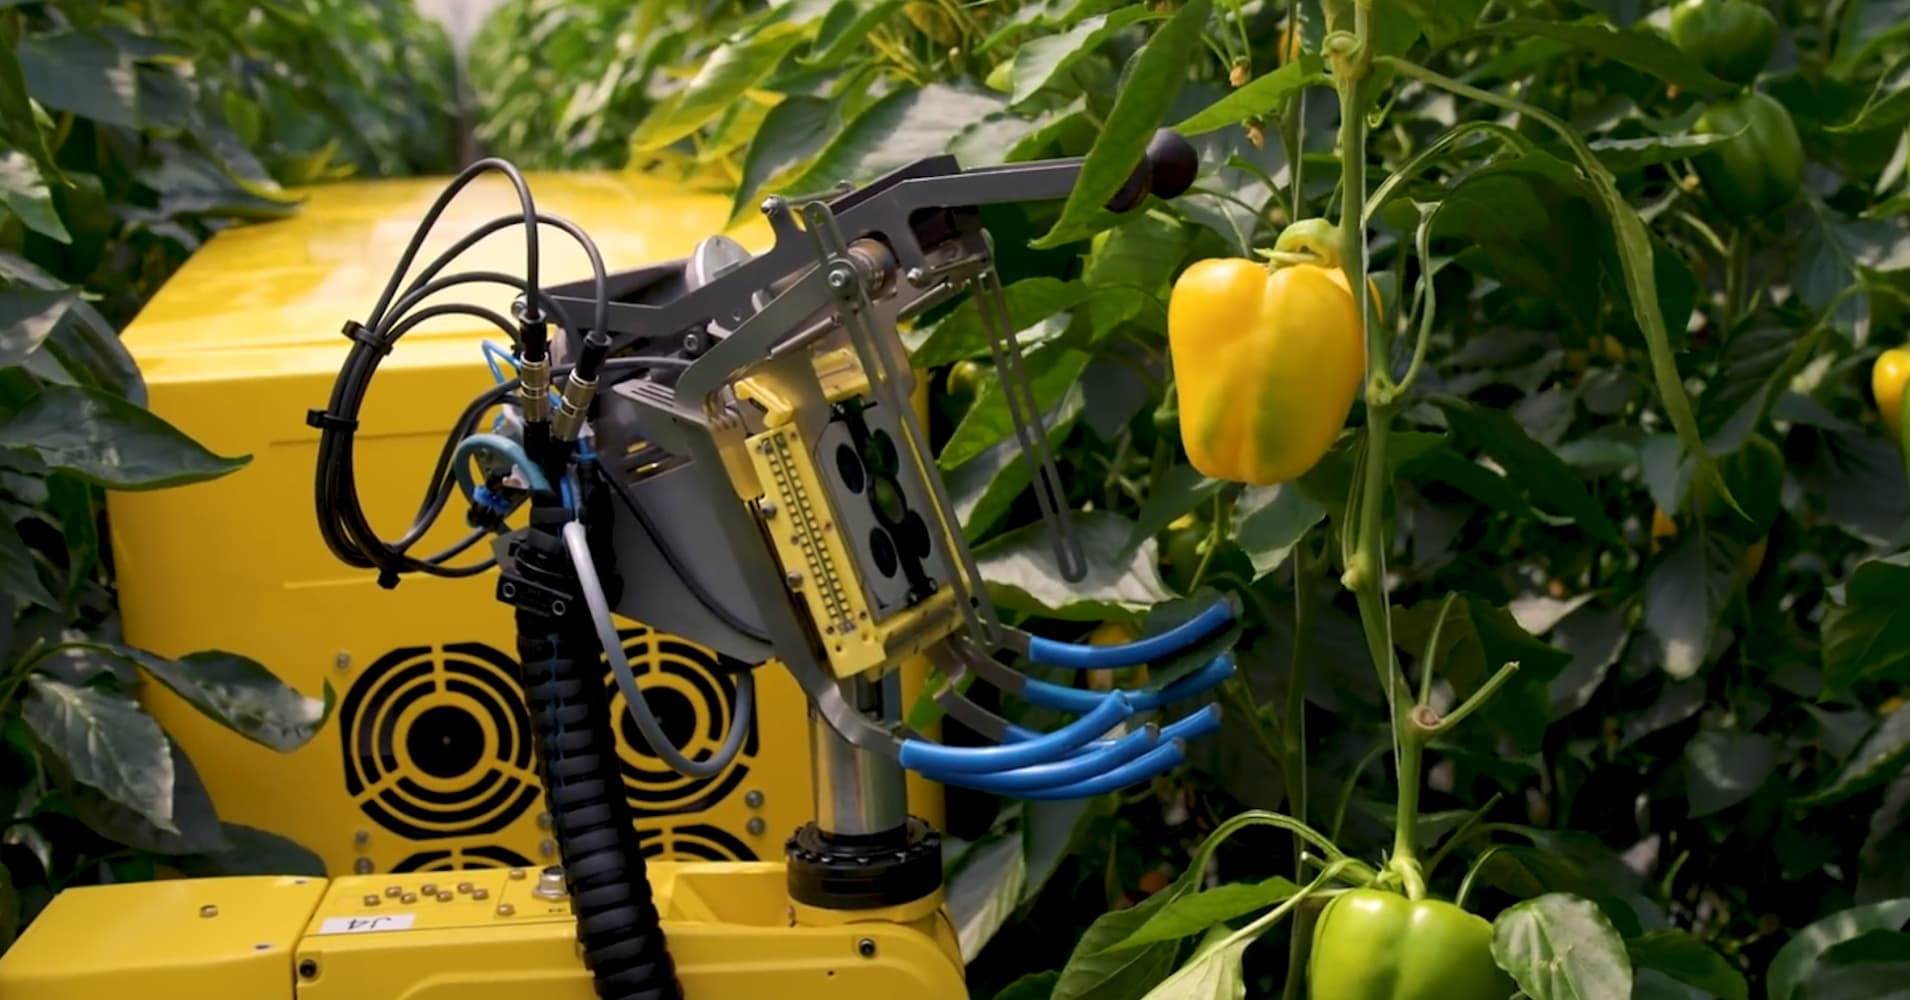 This Robot Picks a Pepper in 24 Seconds Using a Tiny Saw, and Could Help Combat Farm Labor Shortage